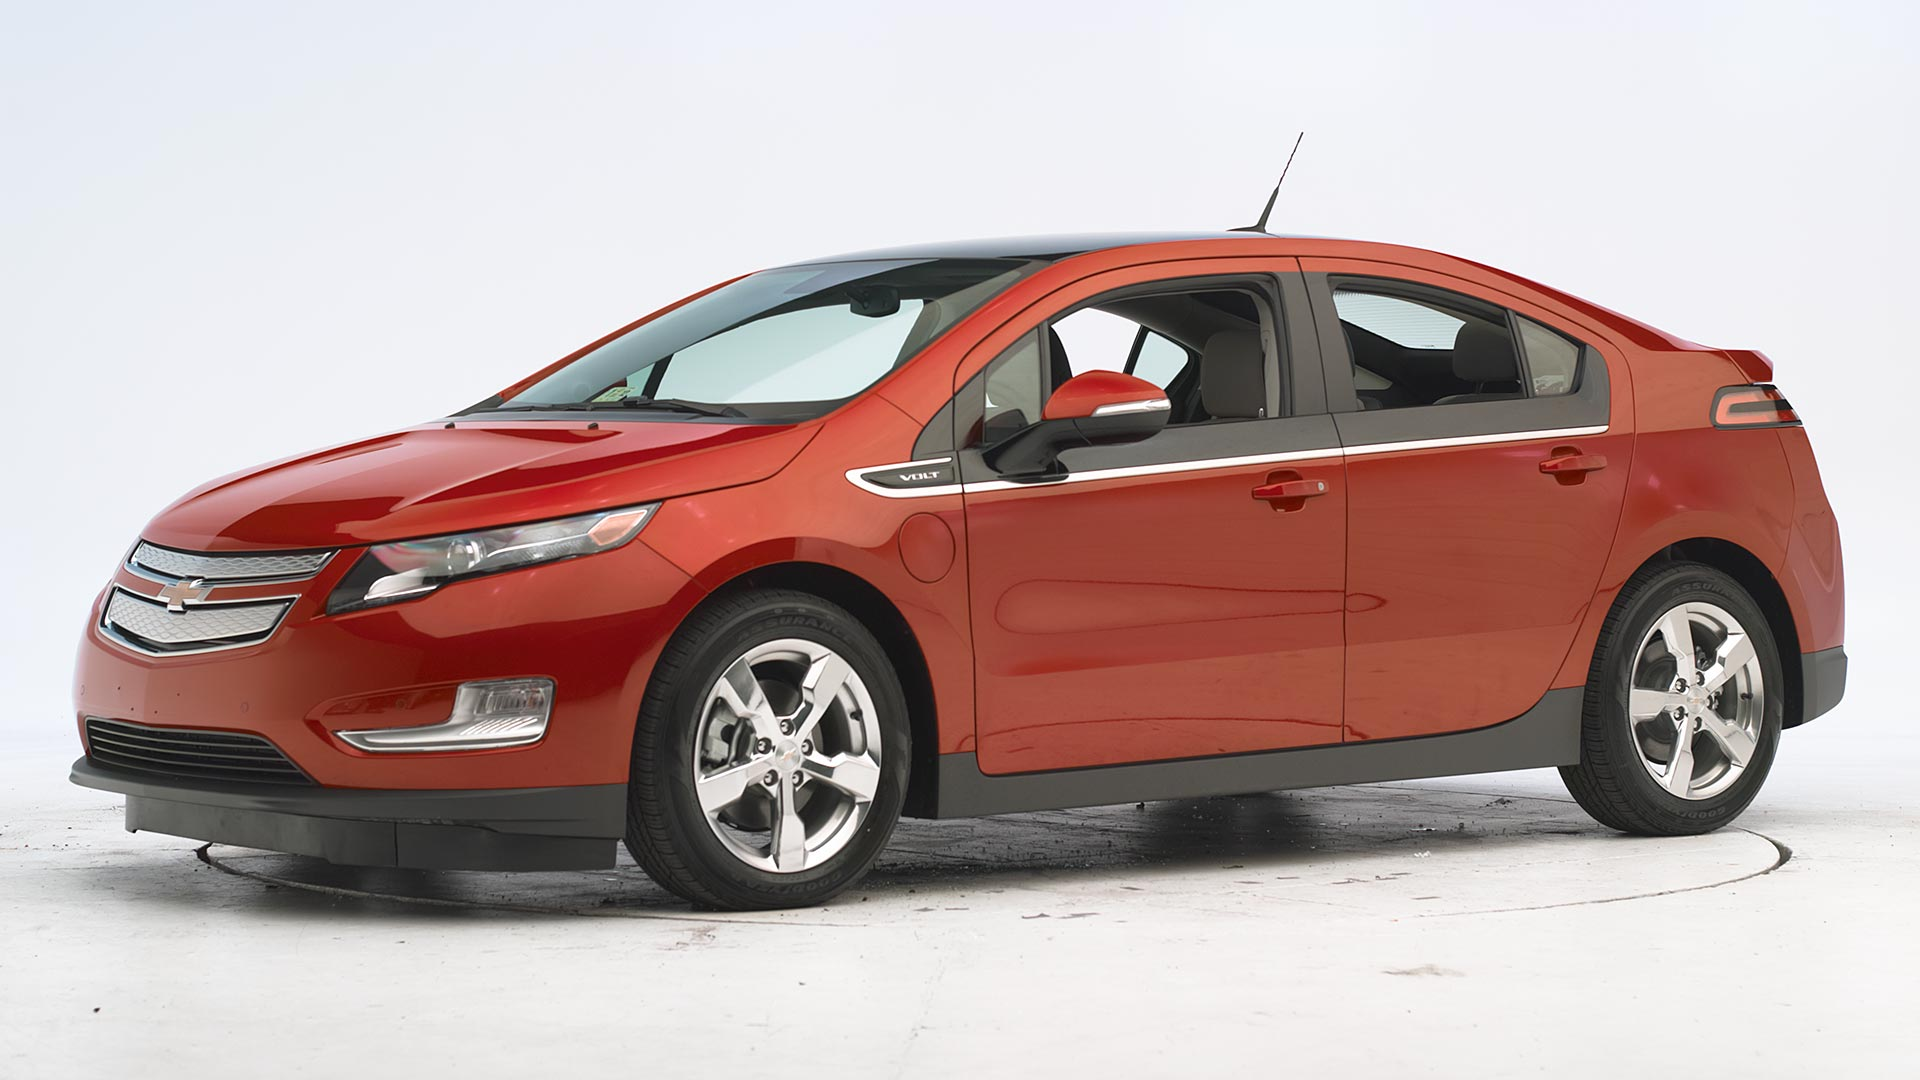 2011 Chevrolet Volt 4-door sedan